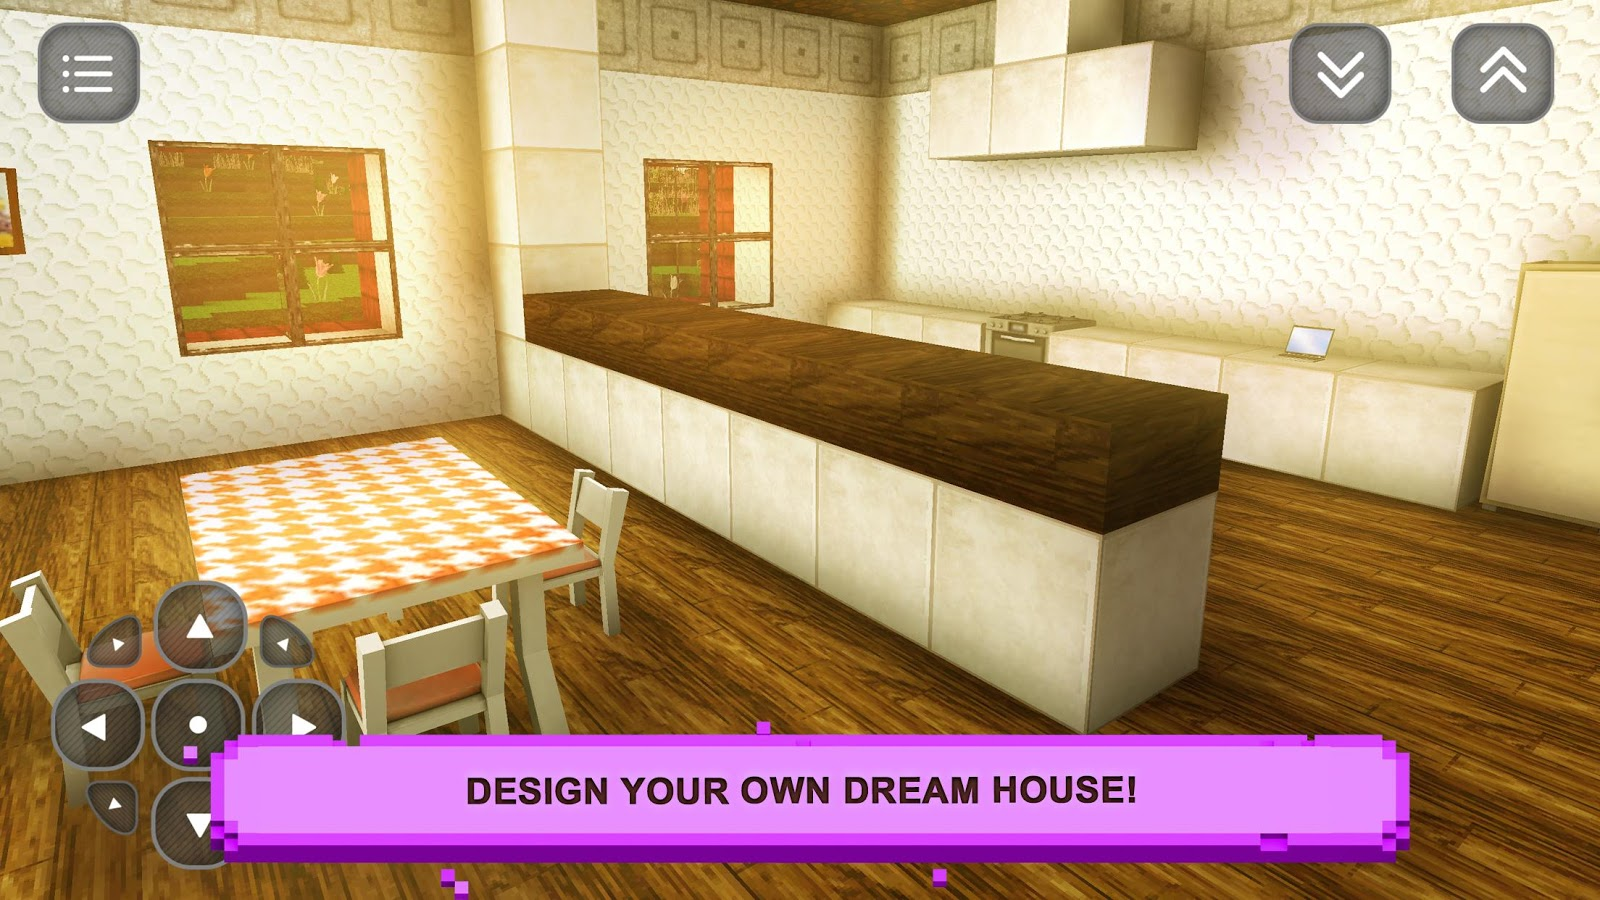 Home Design Game home design game Sim Girls Craft Home Design Screenshot